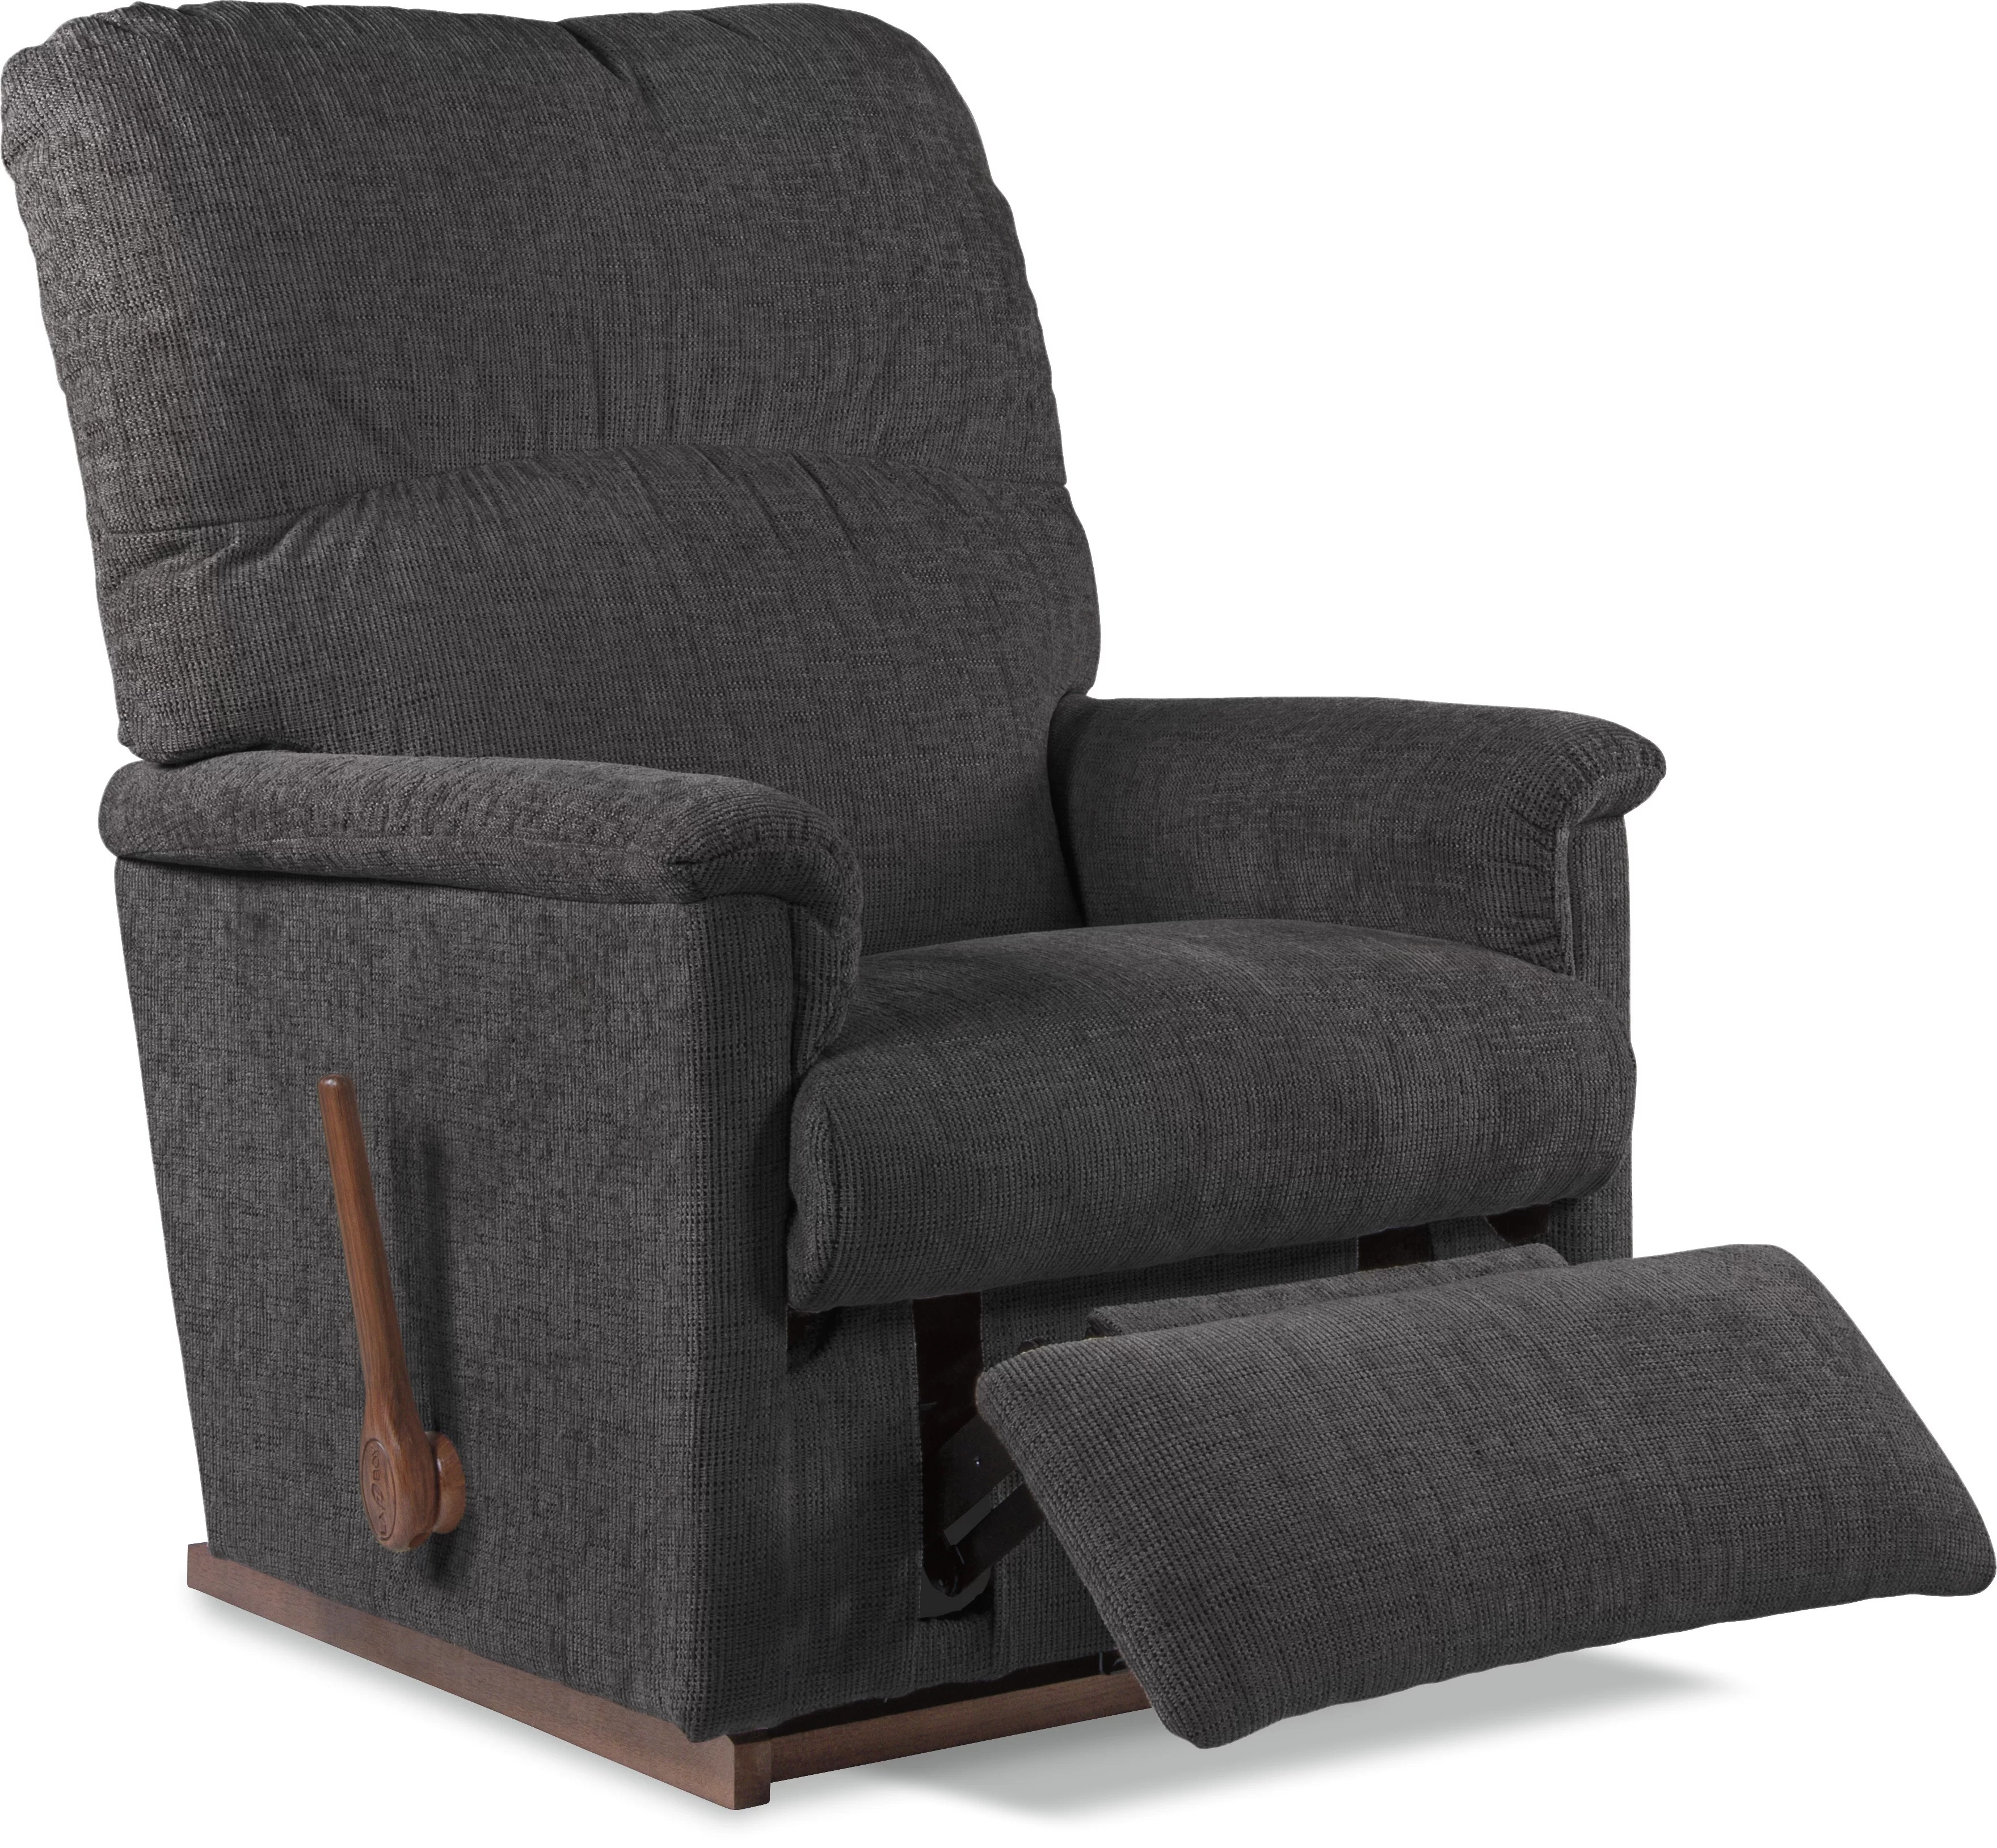 Boys Chair Collage Manual Rocker Recliner